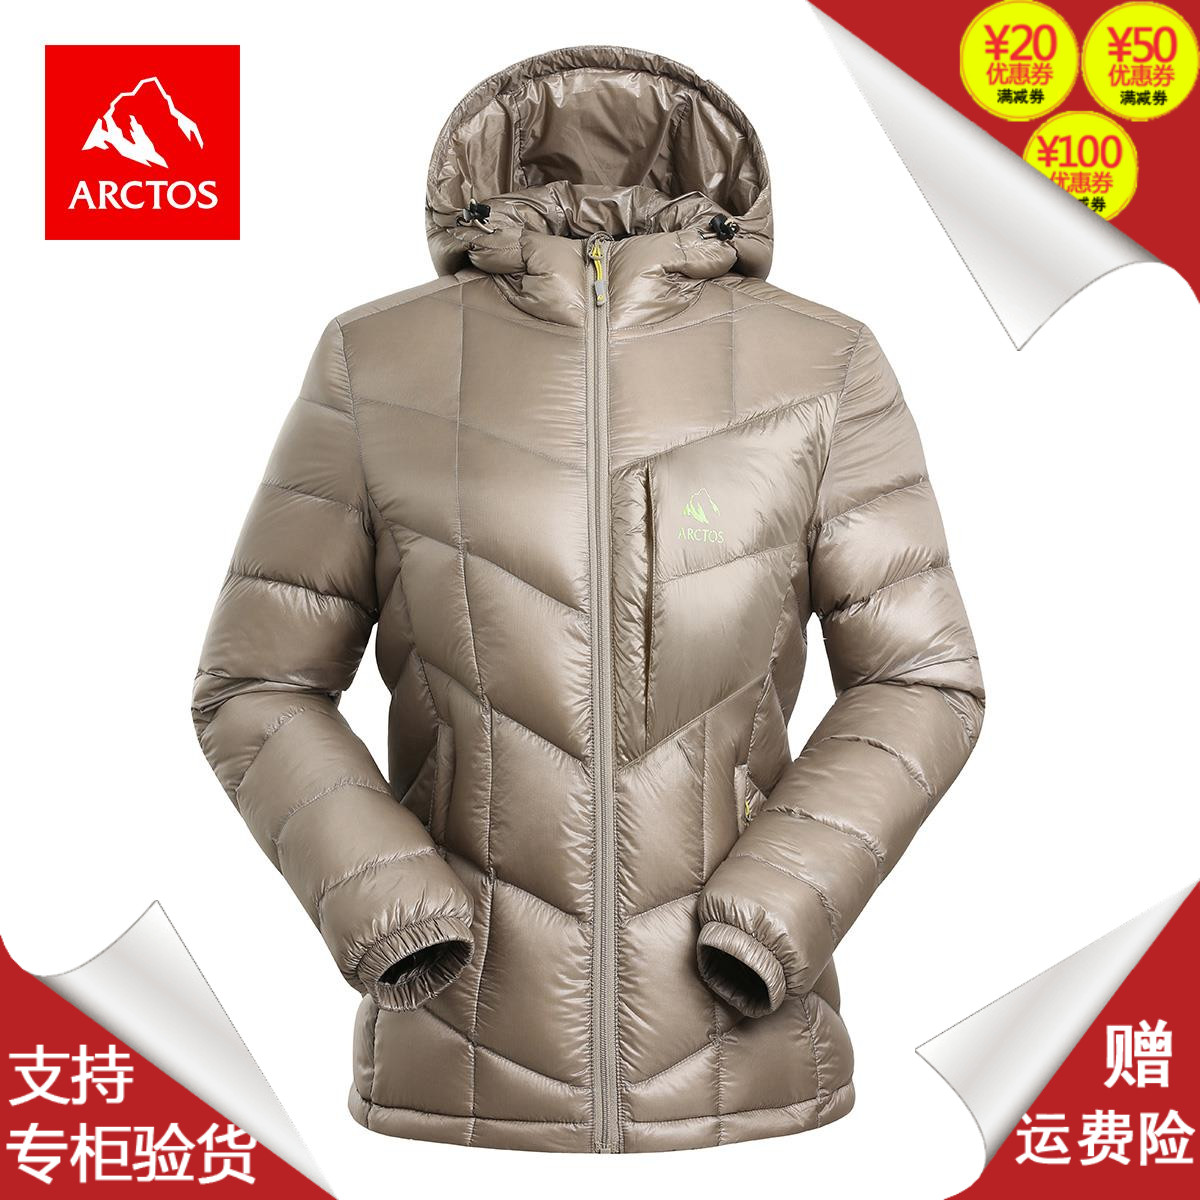 Arctos extreme star outdoor down jacket light warm thick female section autumn and winter short down jacket AGDA22109